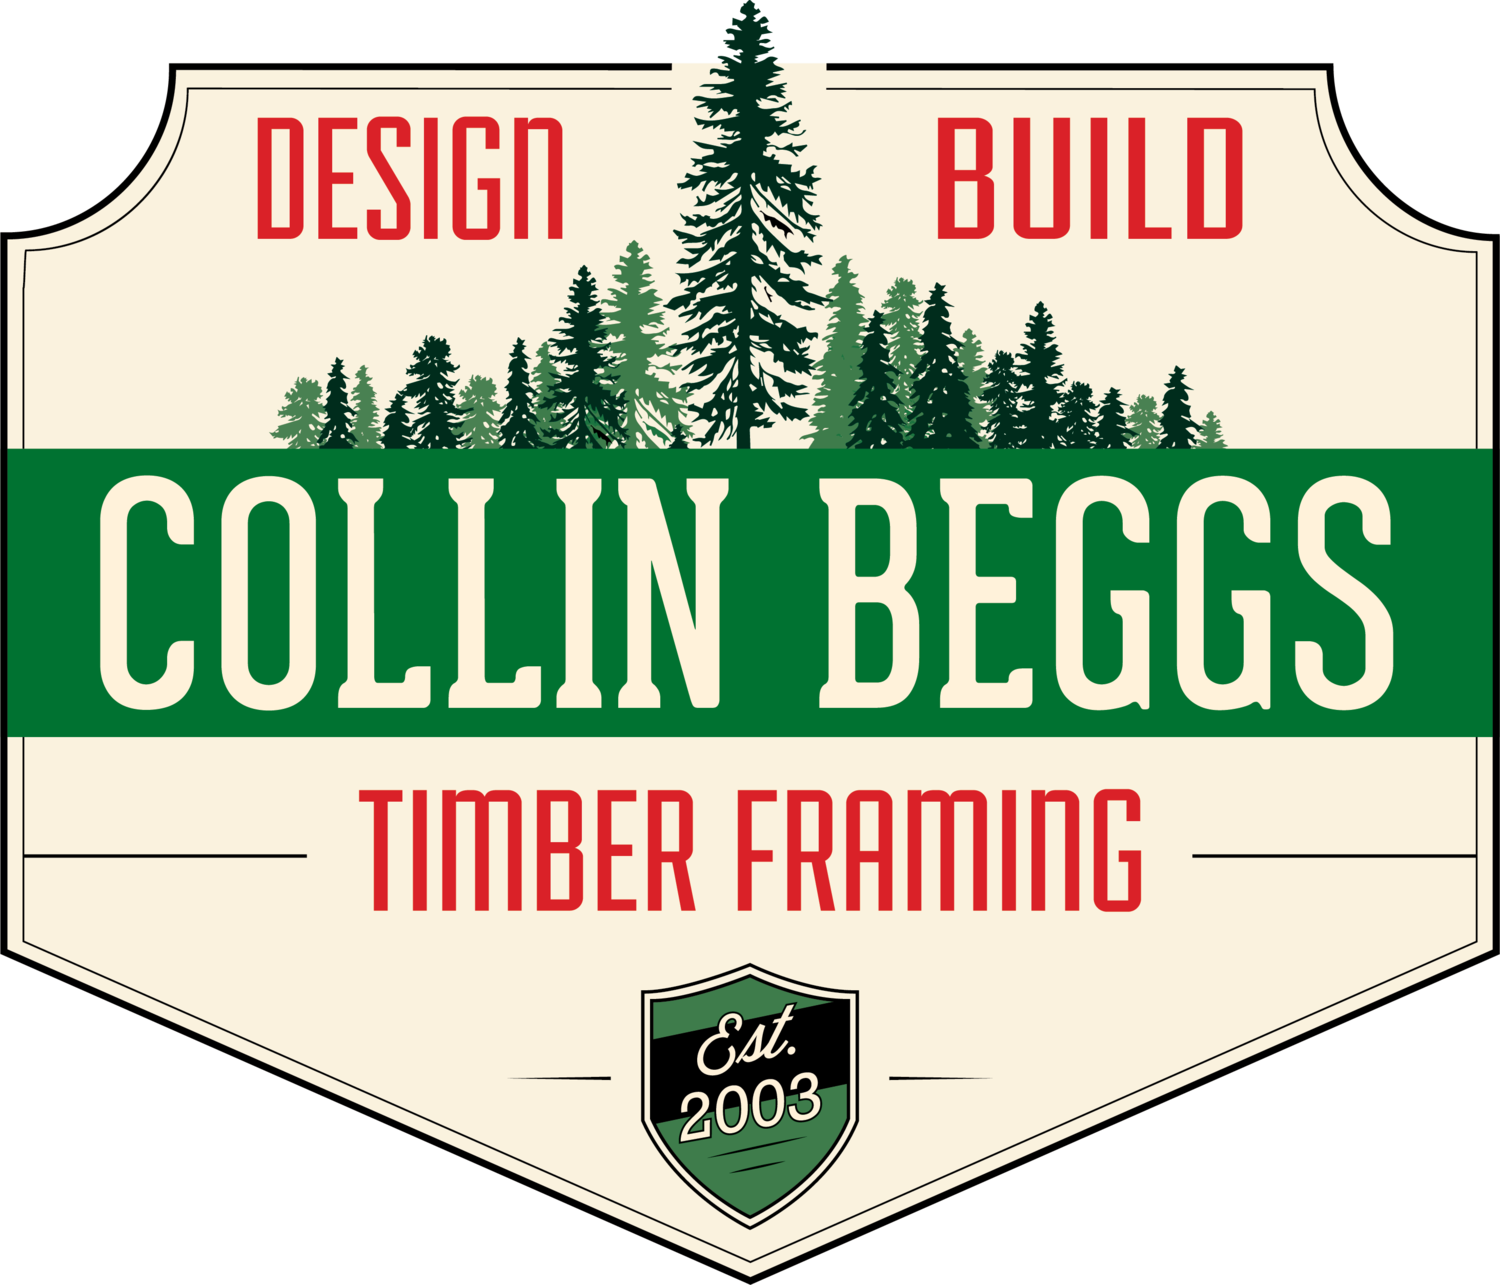 Collin Beggs Design Build Timber Framing